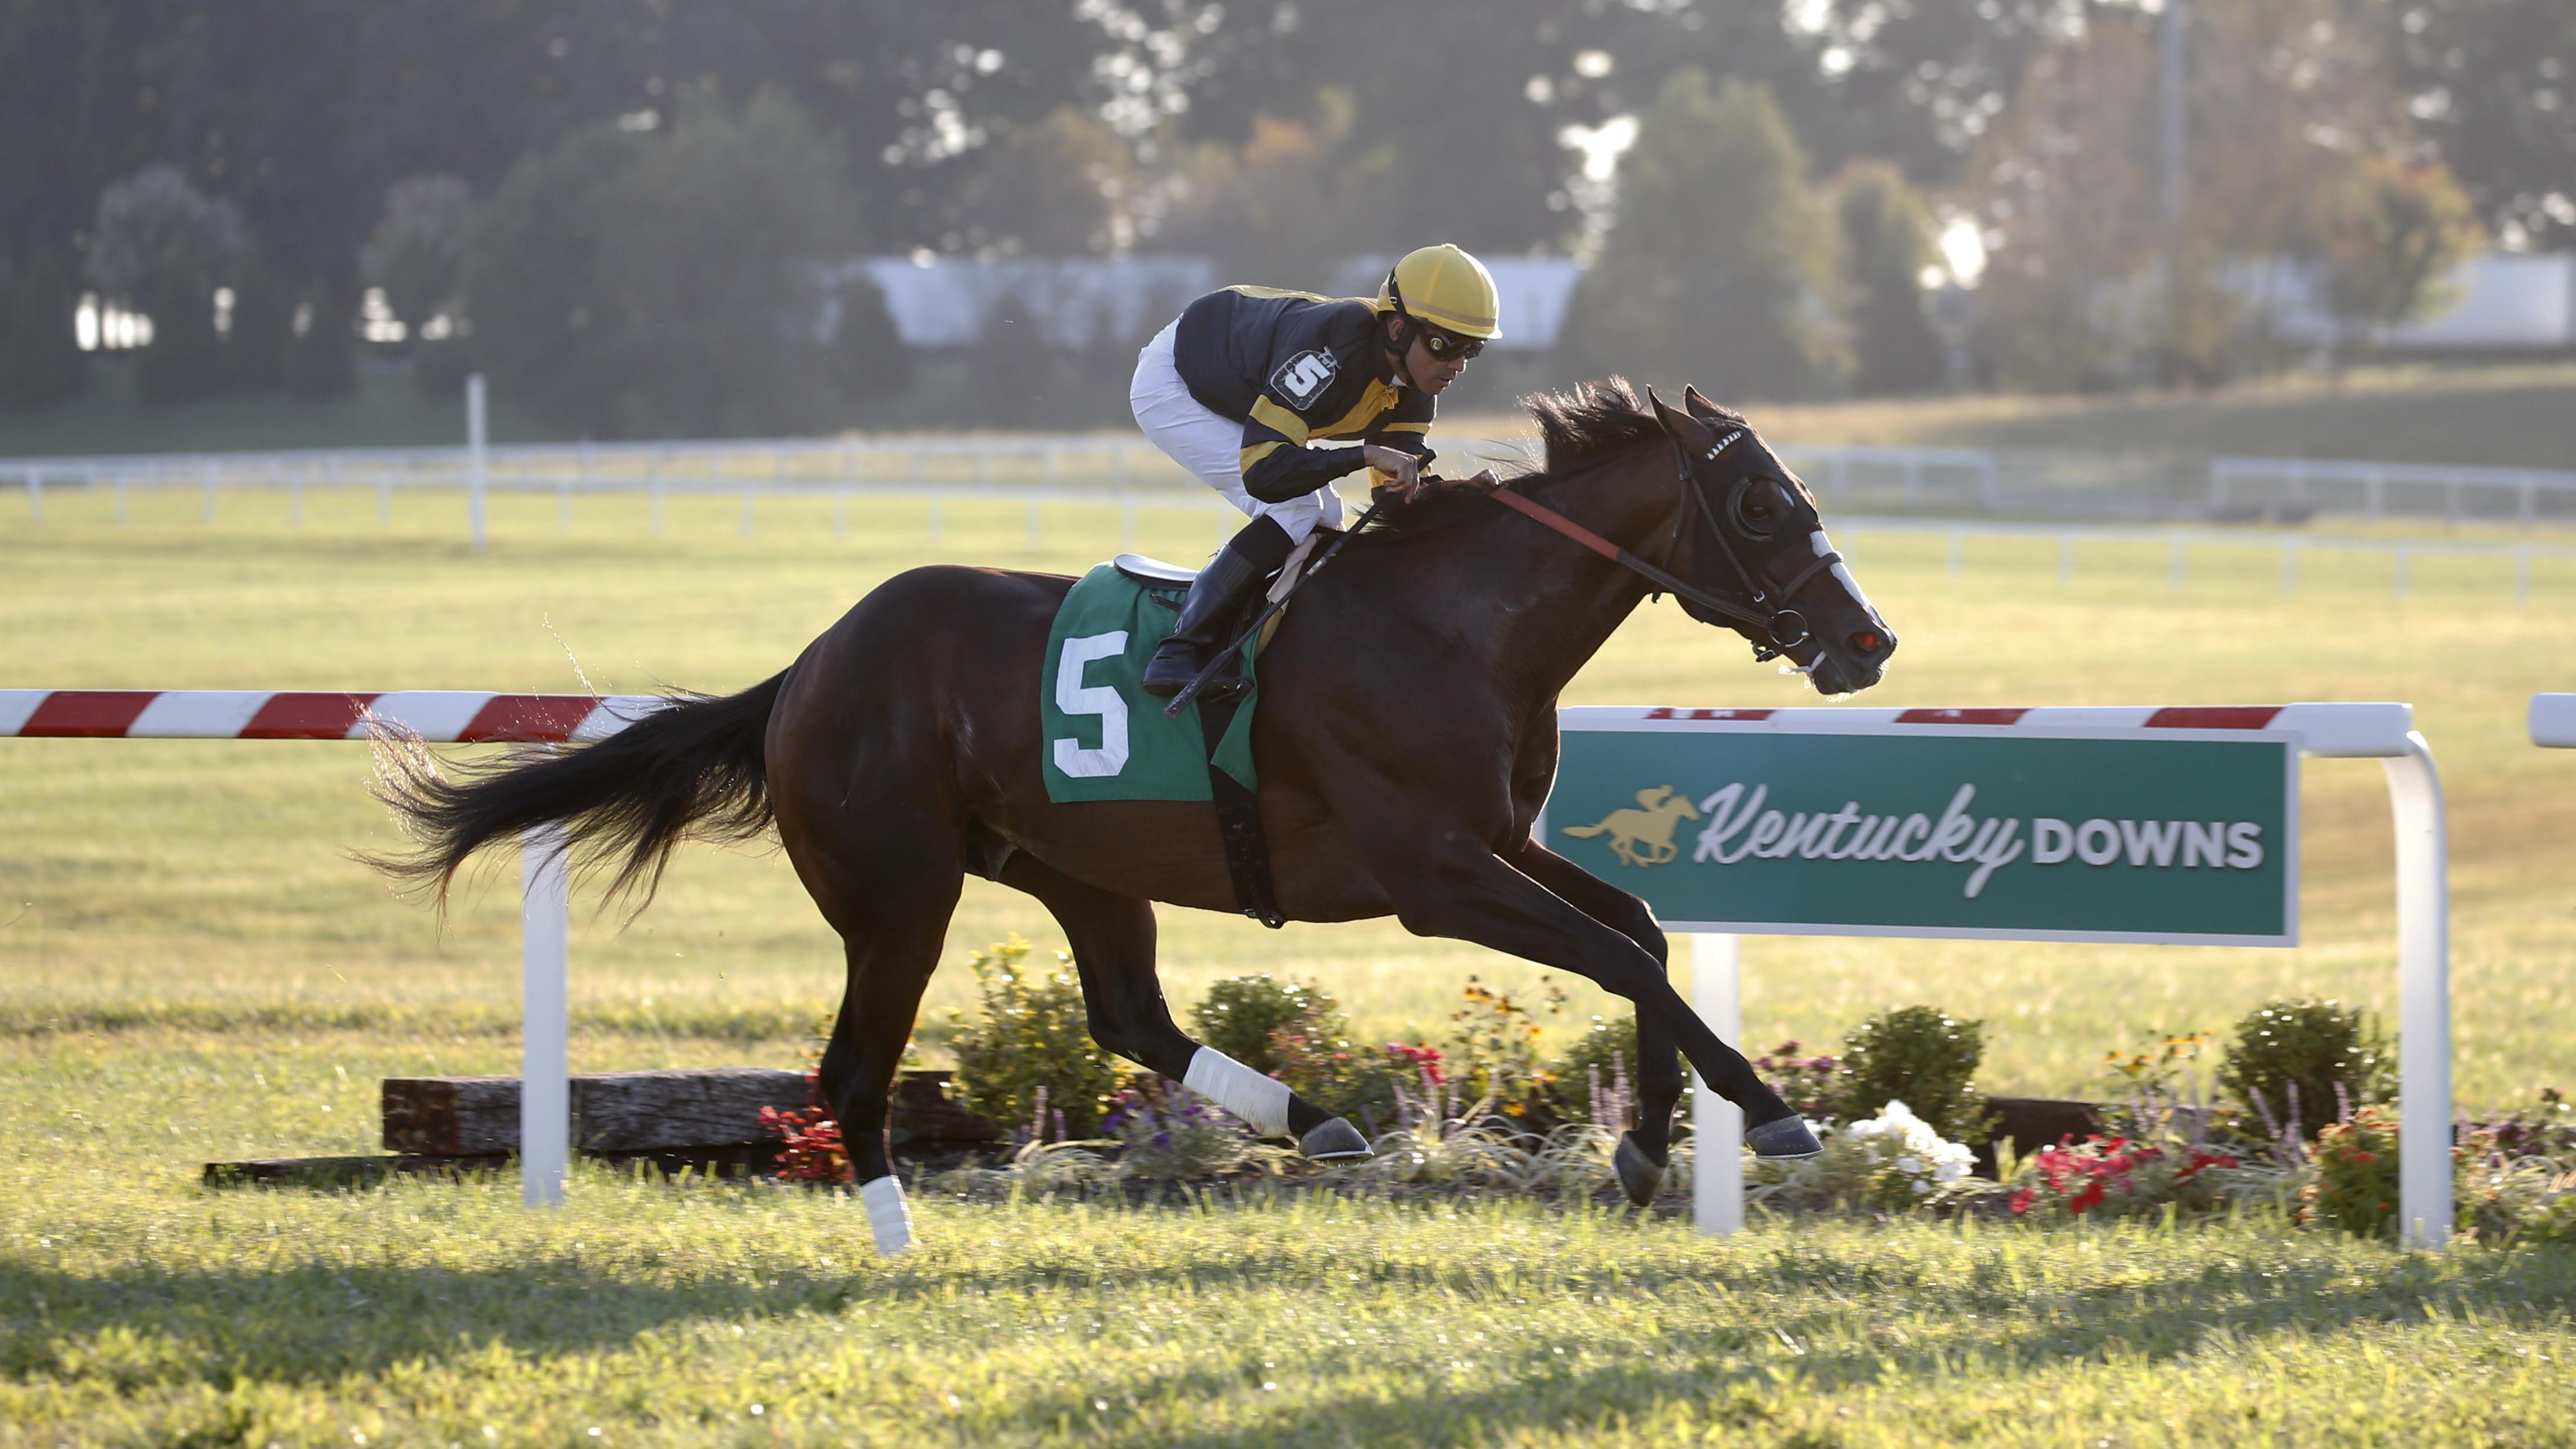 Kentucky Downs Turf Racing S September Place To Be Lady